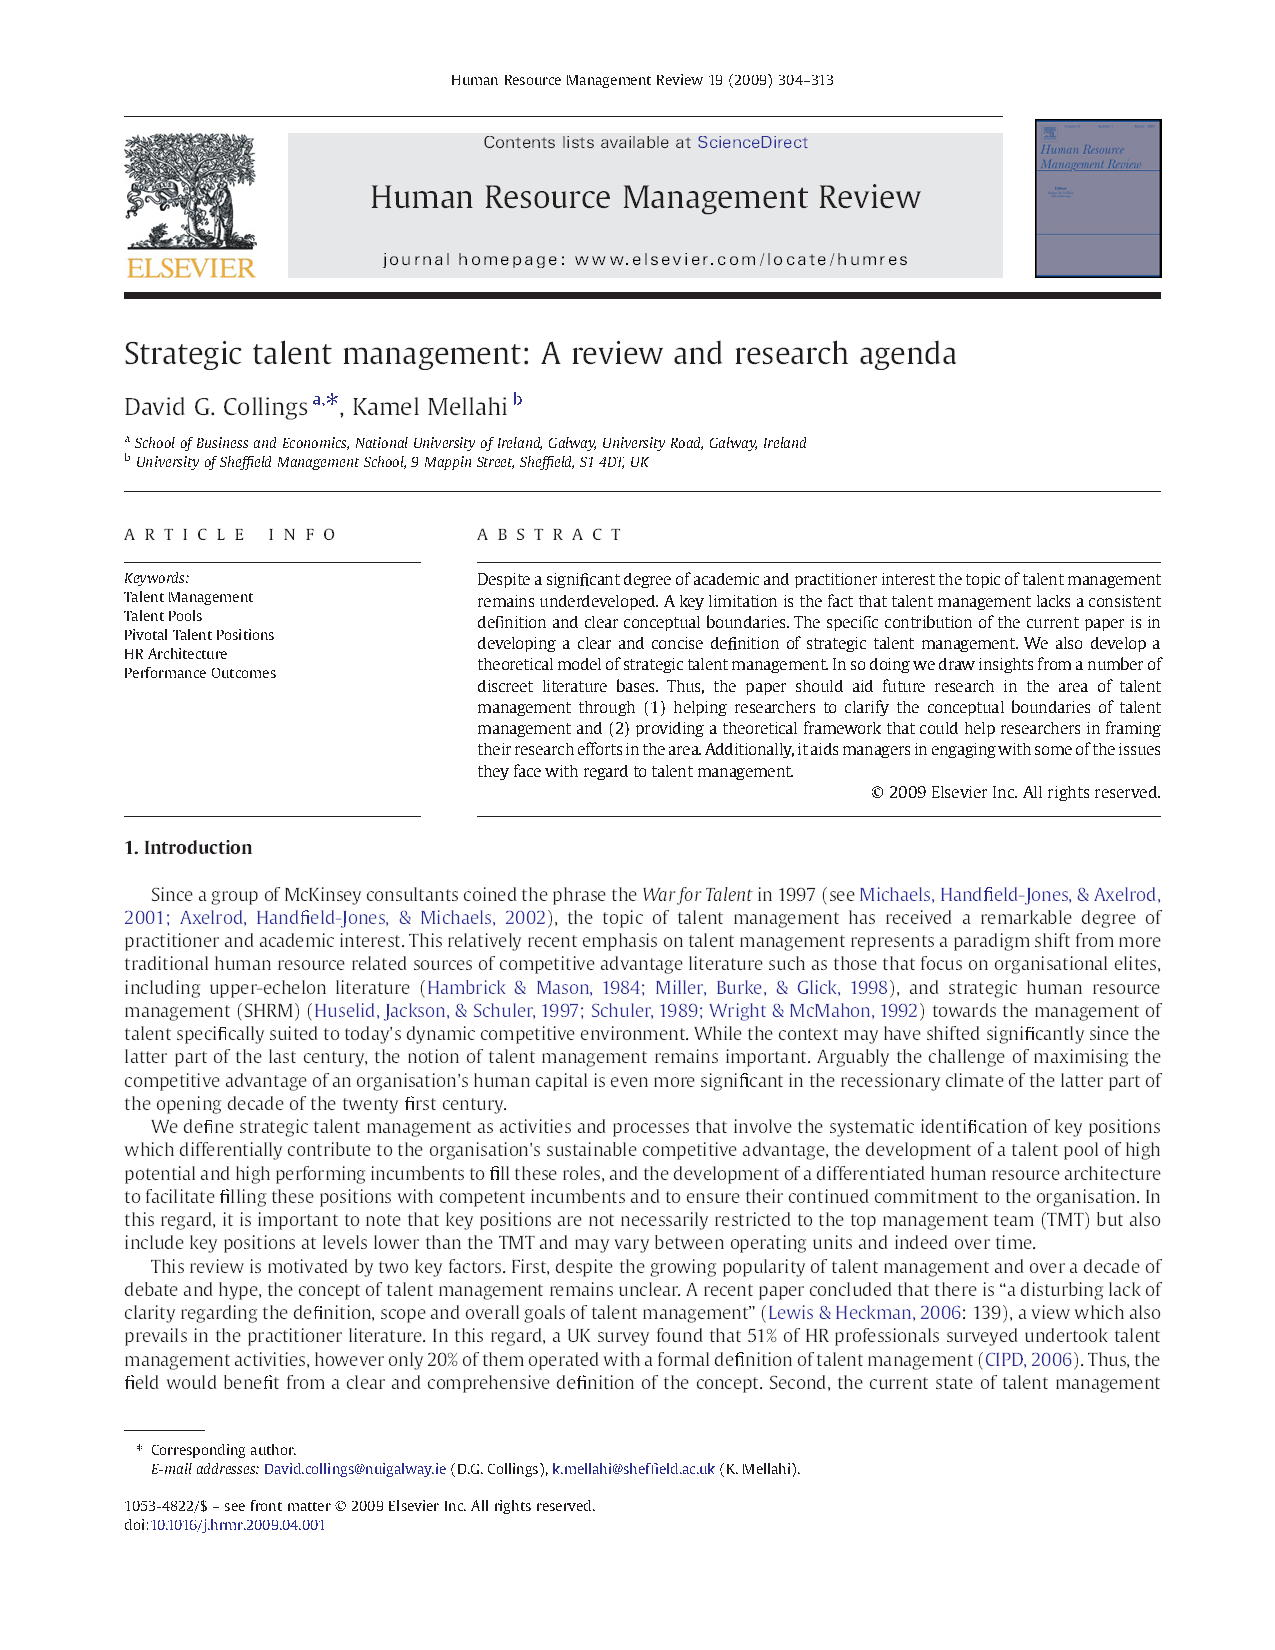 Strategic talent management - A review and research agenda9